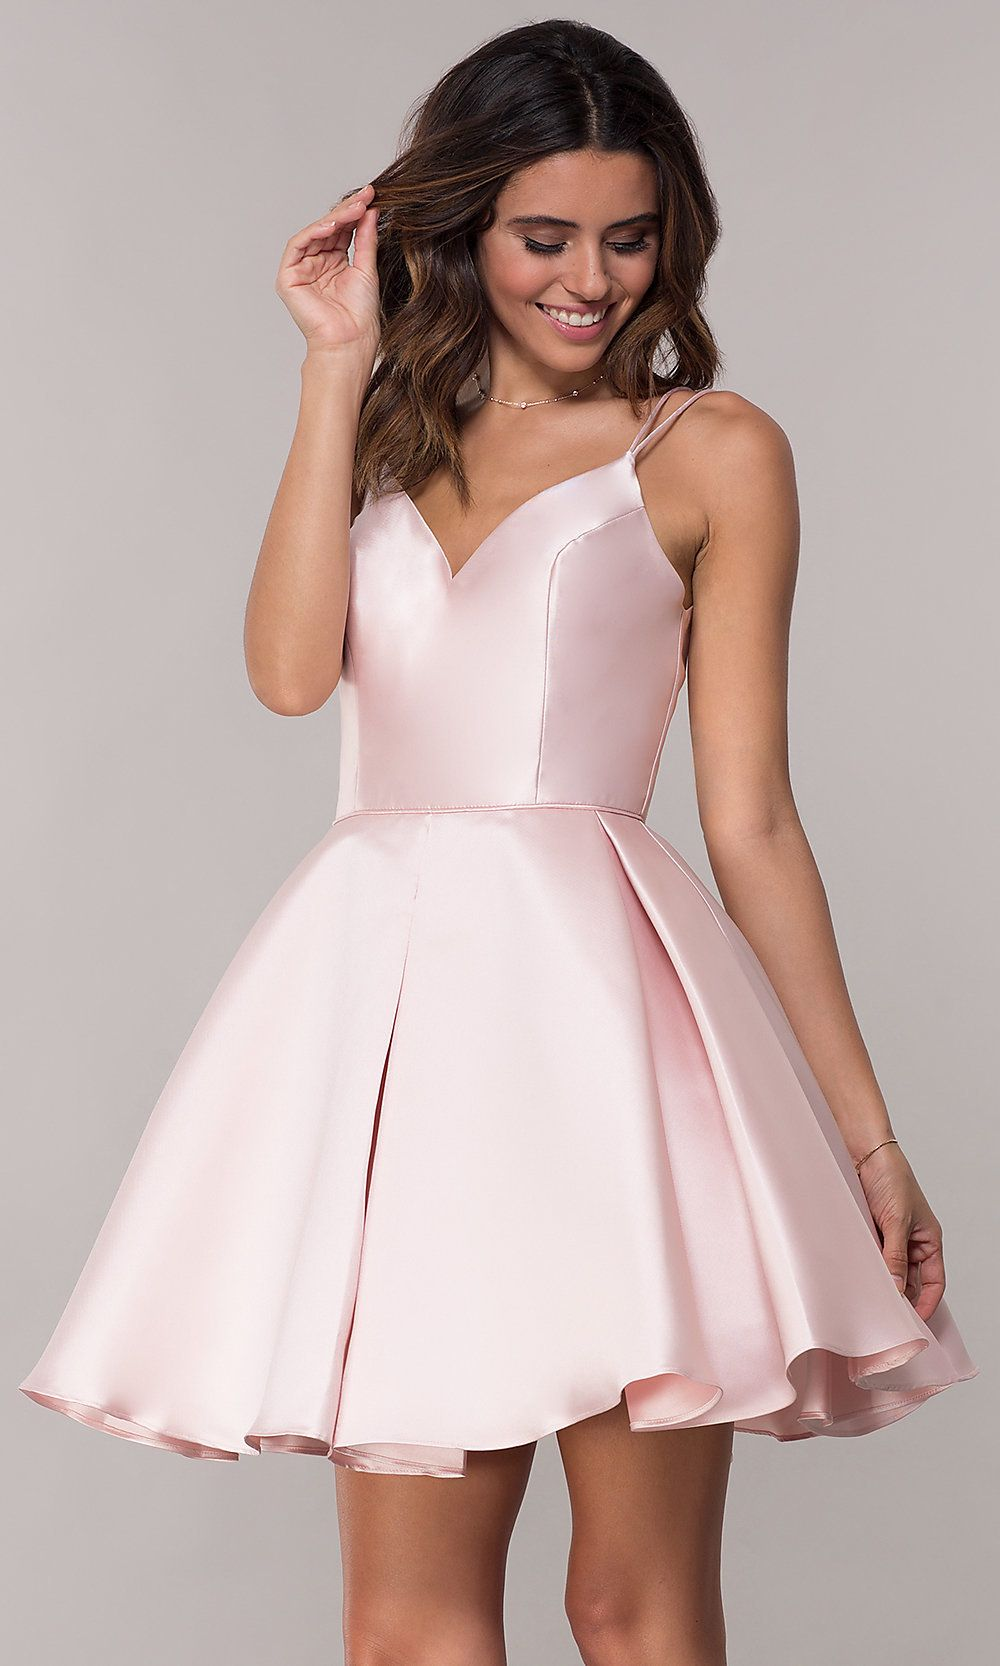 57ee2a0dc76 Double-Strap V-Neck Alyce Short Homecoming Dress in 2019